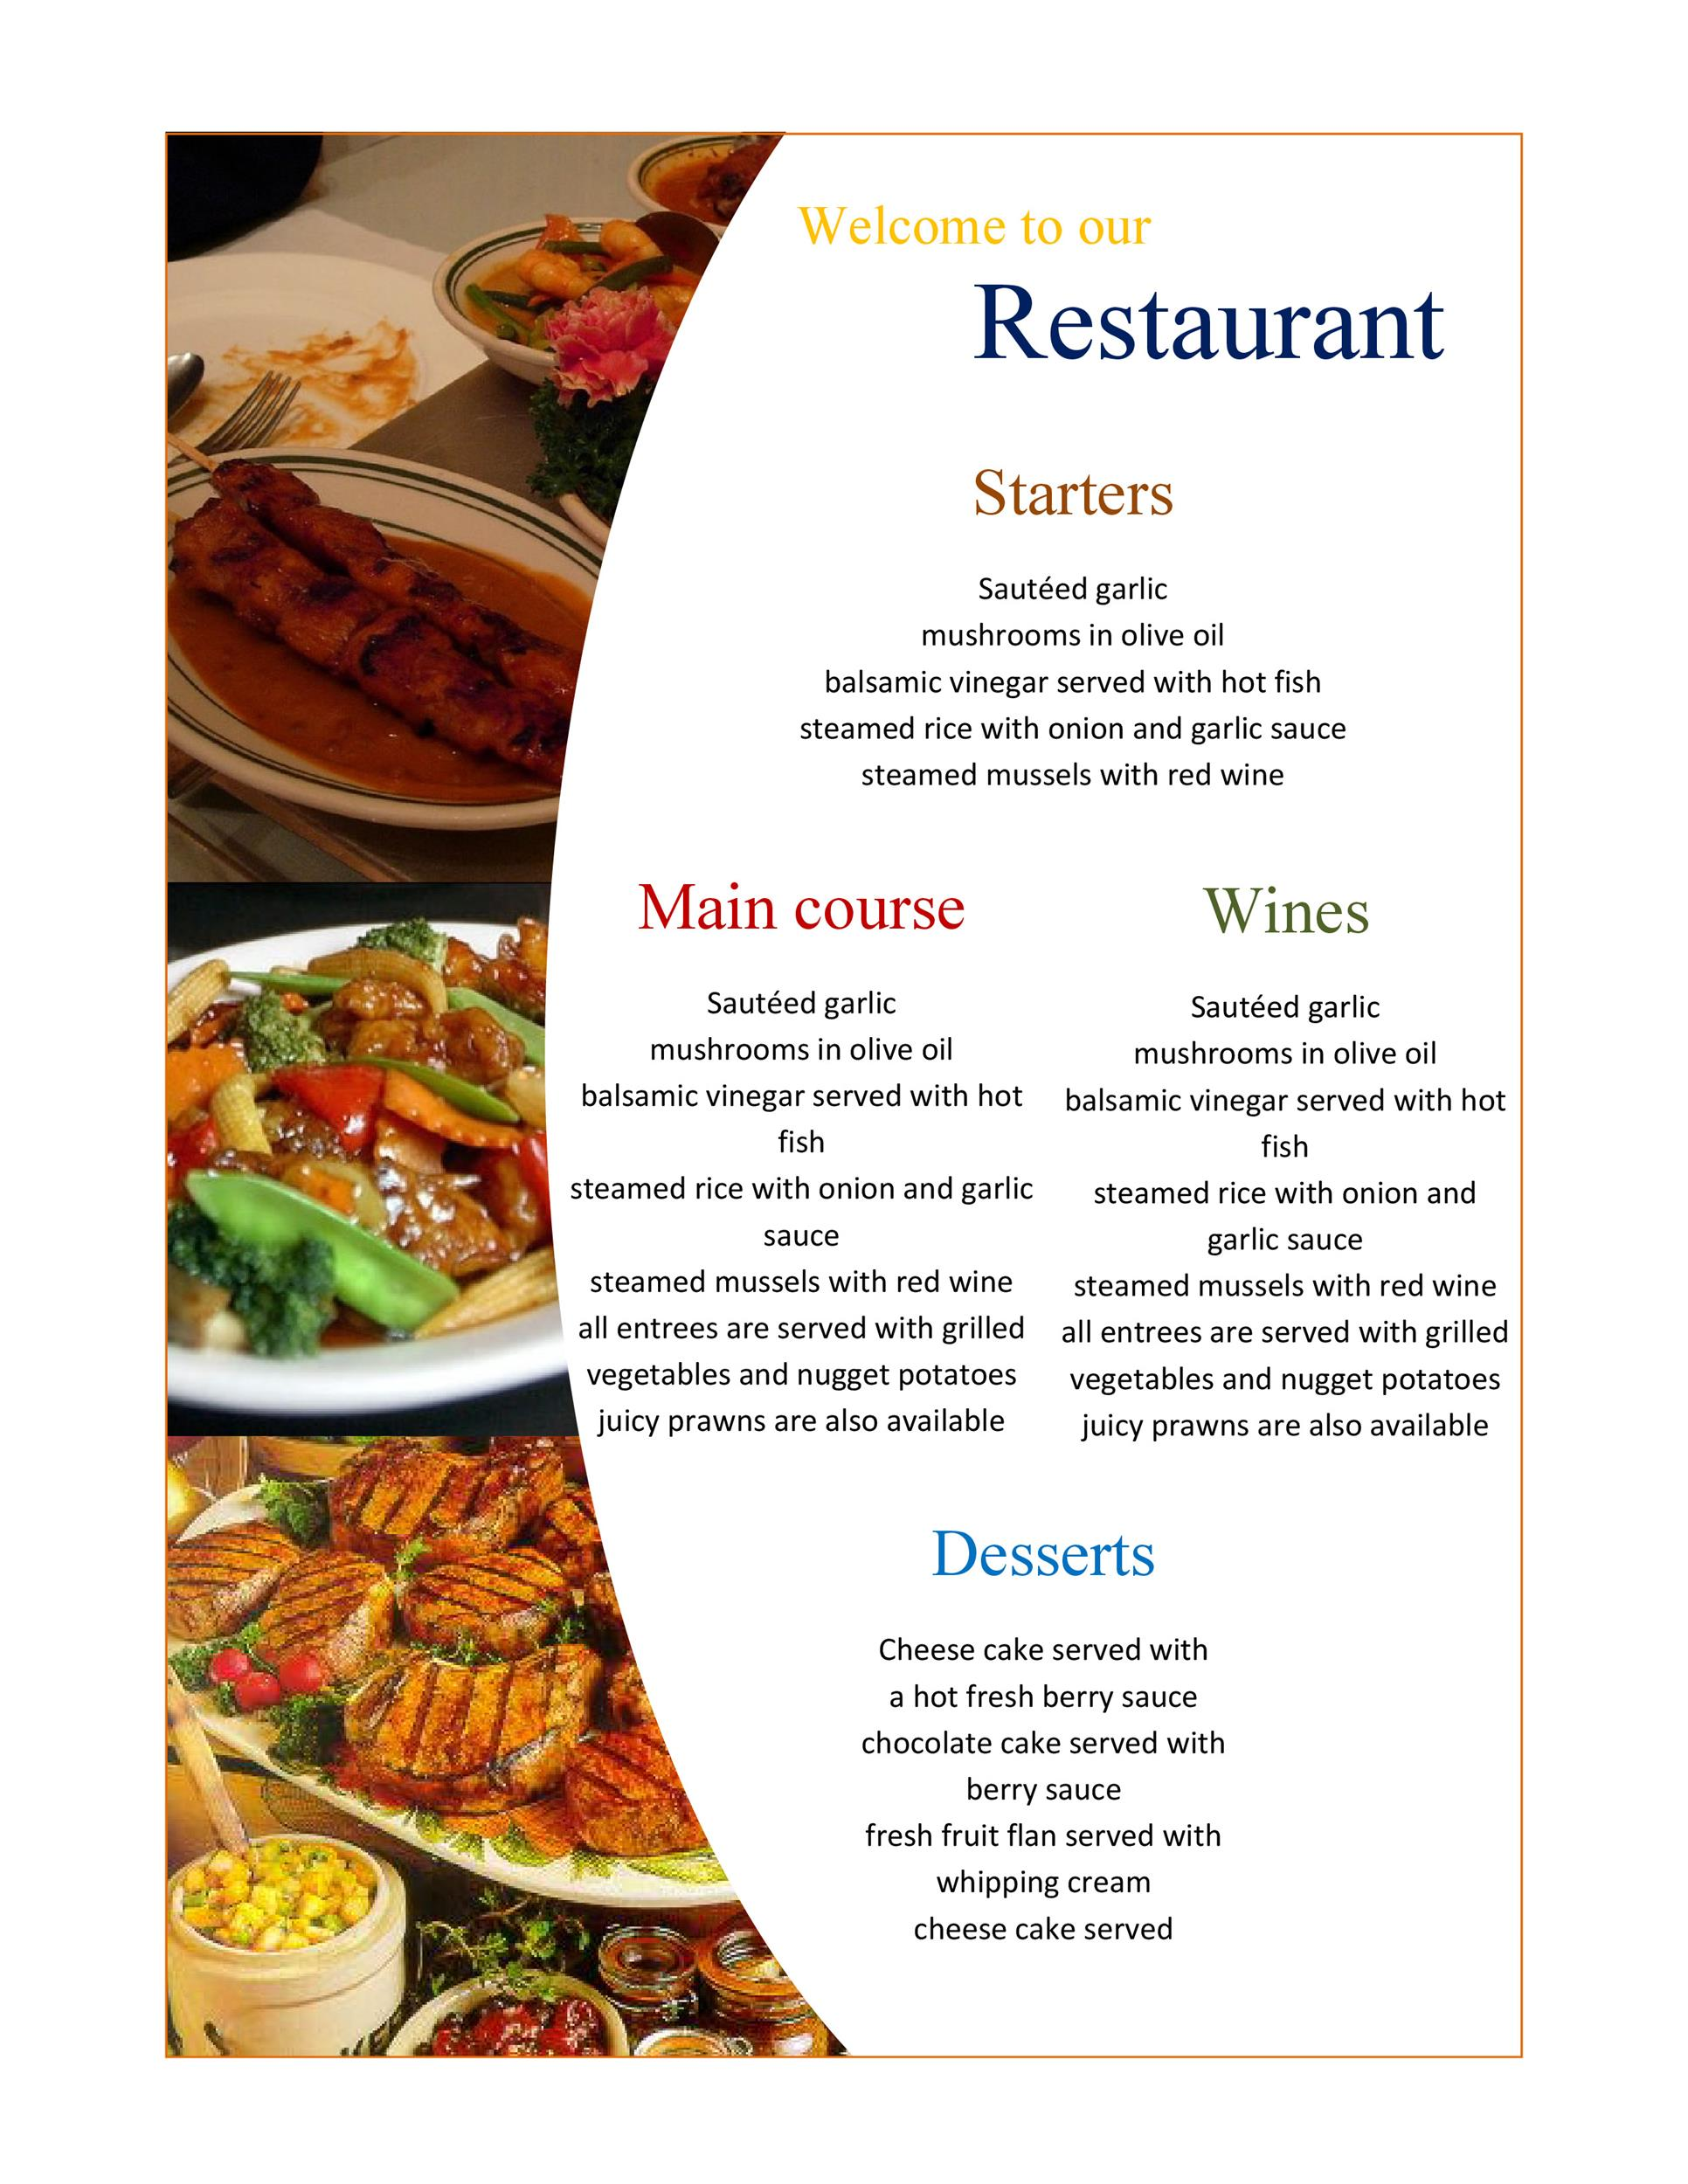 Good Printable Menu Template 19  Free Printable Restaurant Menu Template